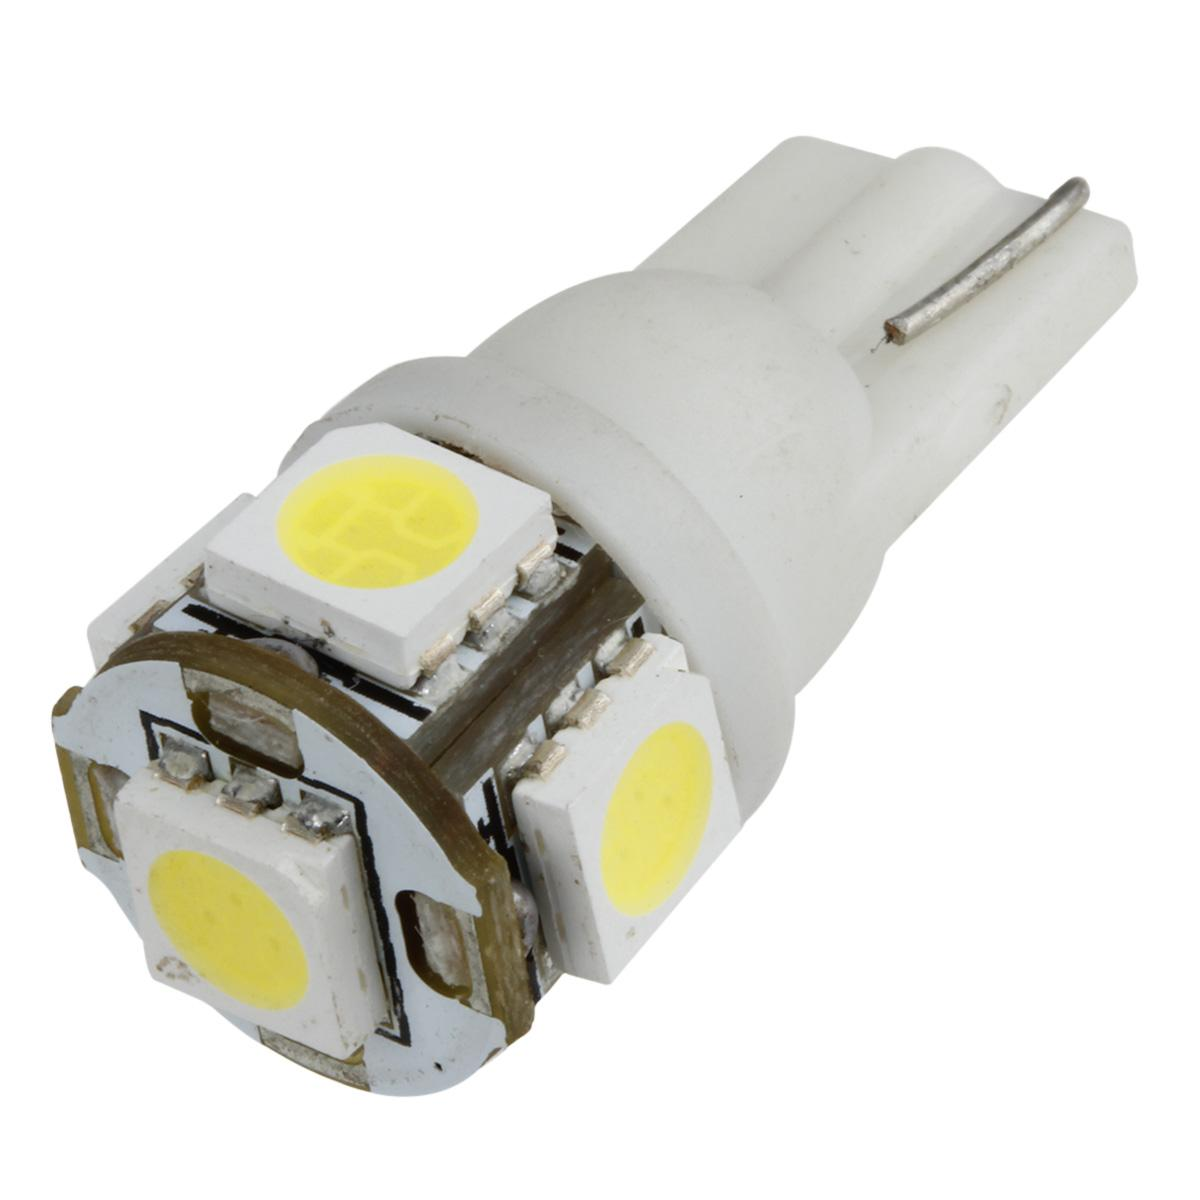 2 X 168 194 T10 2825 White 5 SMD LED Bulbs For Toyota